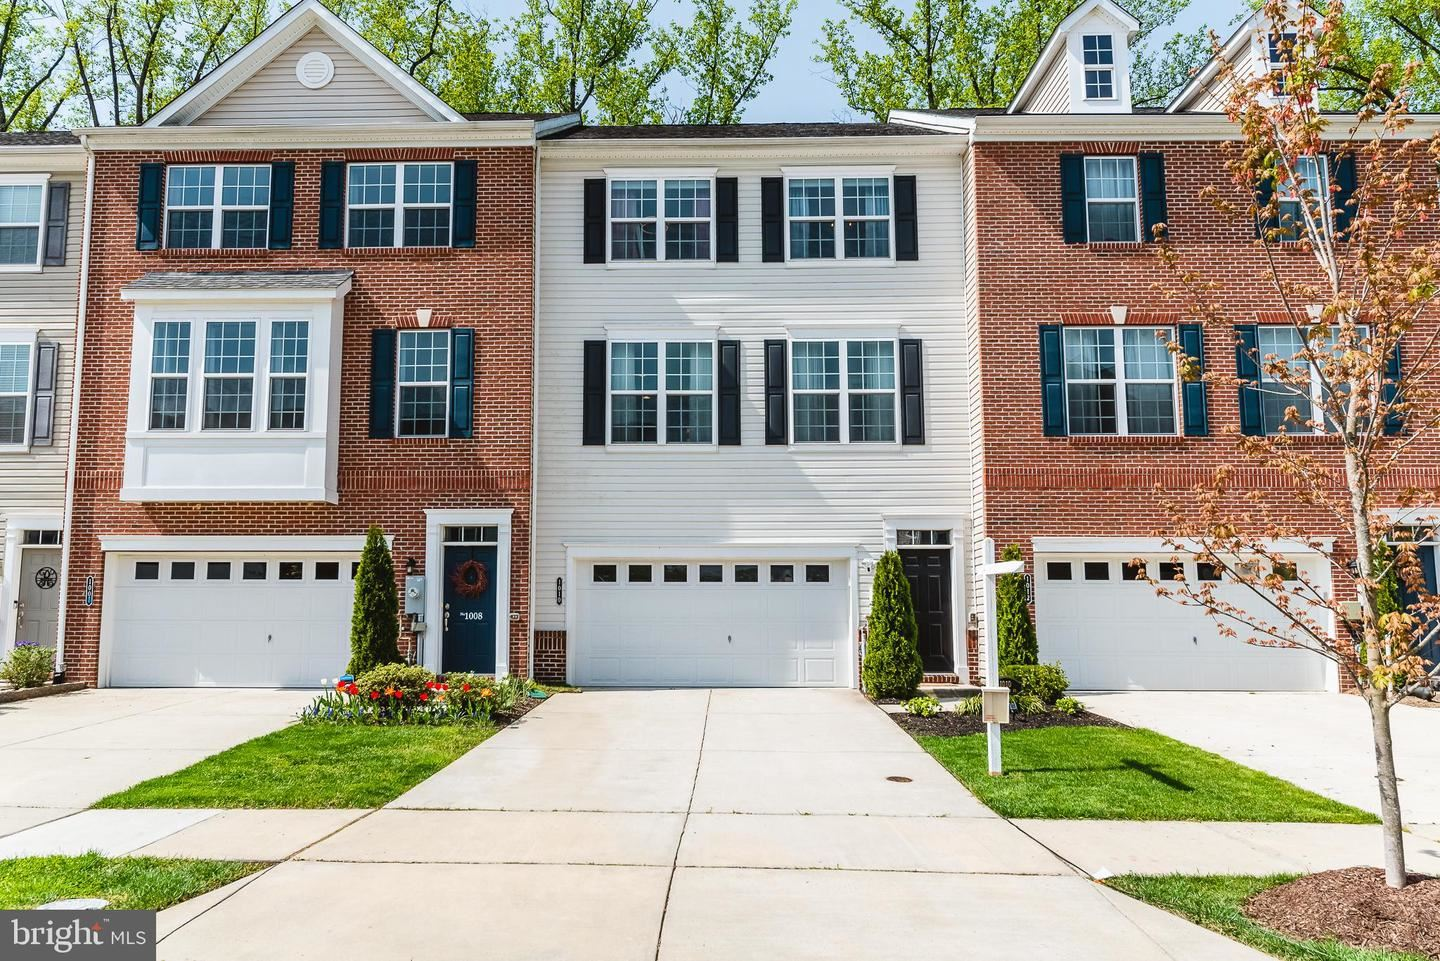 1010 RAMBLE RUN RD, Baltimore, MD 21220 - MLS#: MDBC527010